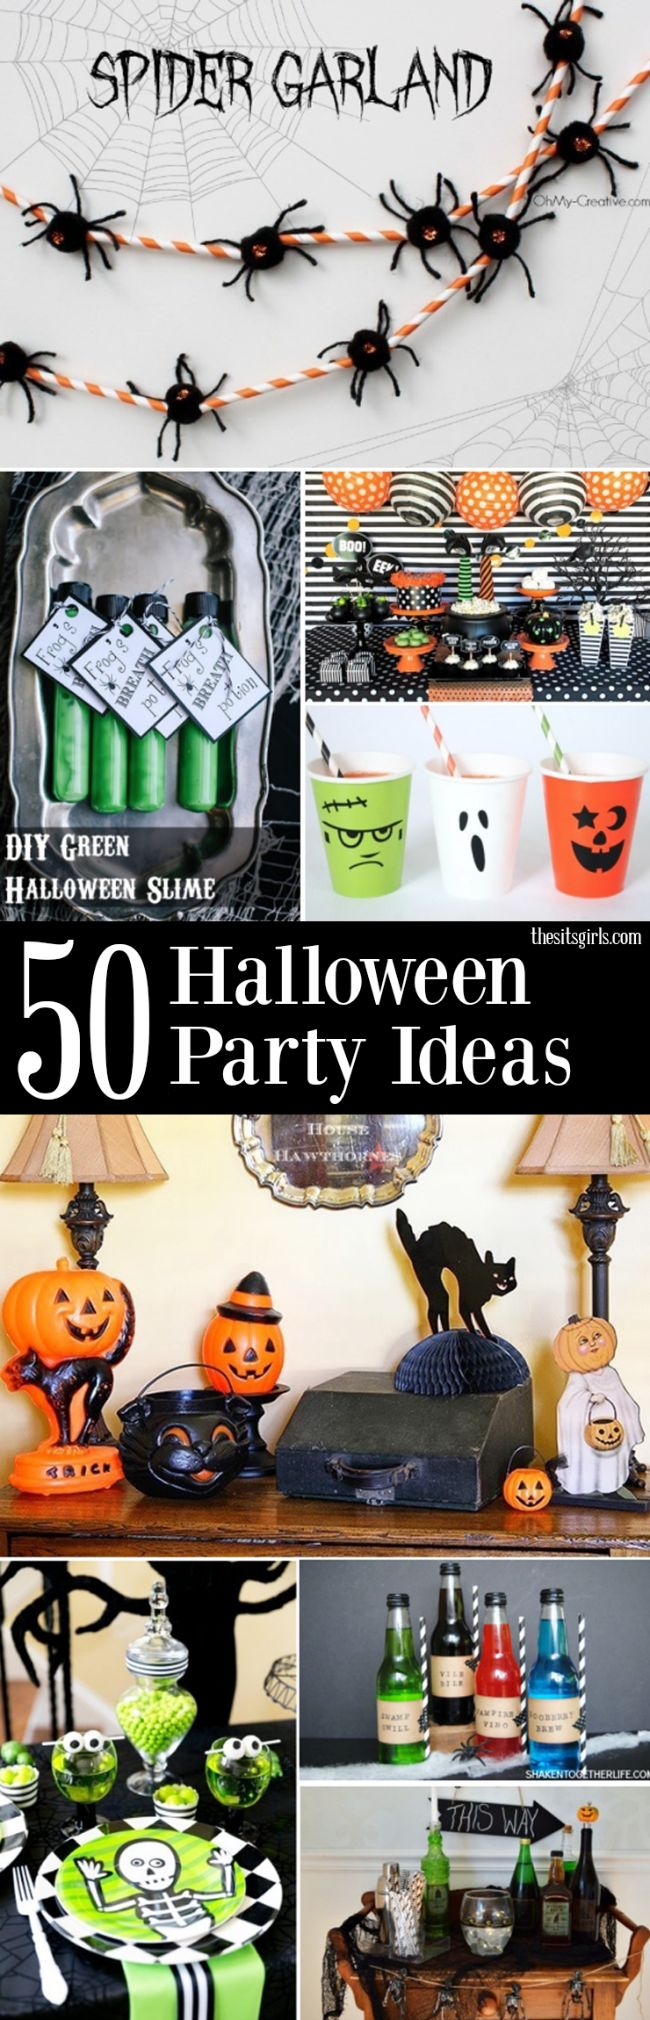 1000+ images about Kids party ideas on Pinterest